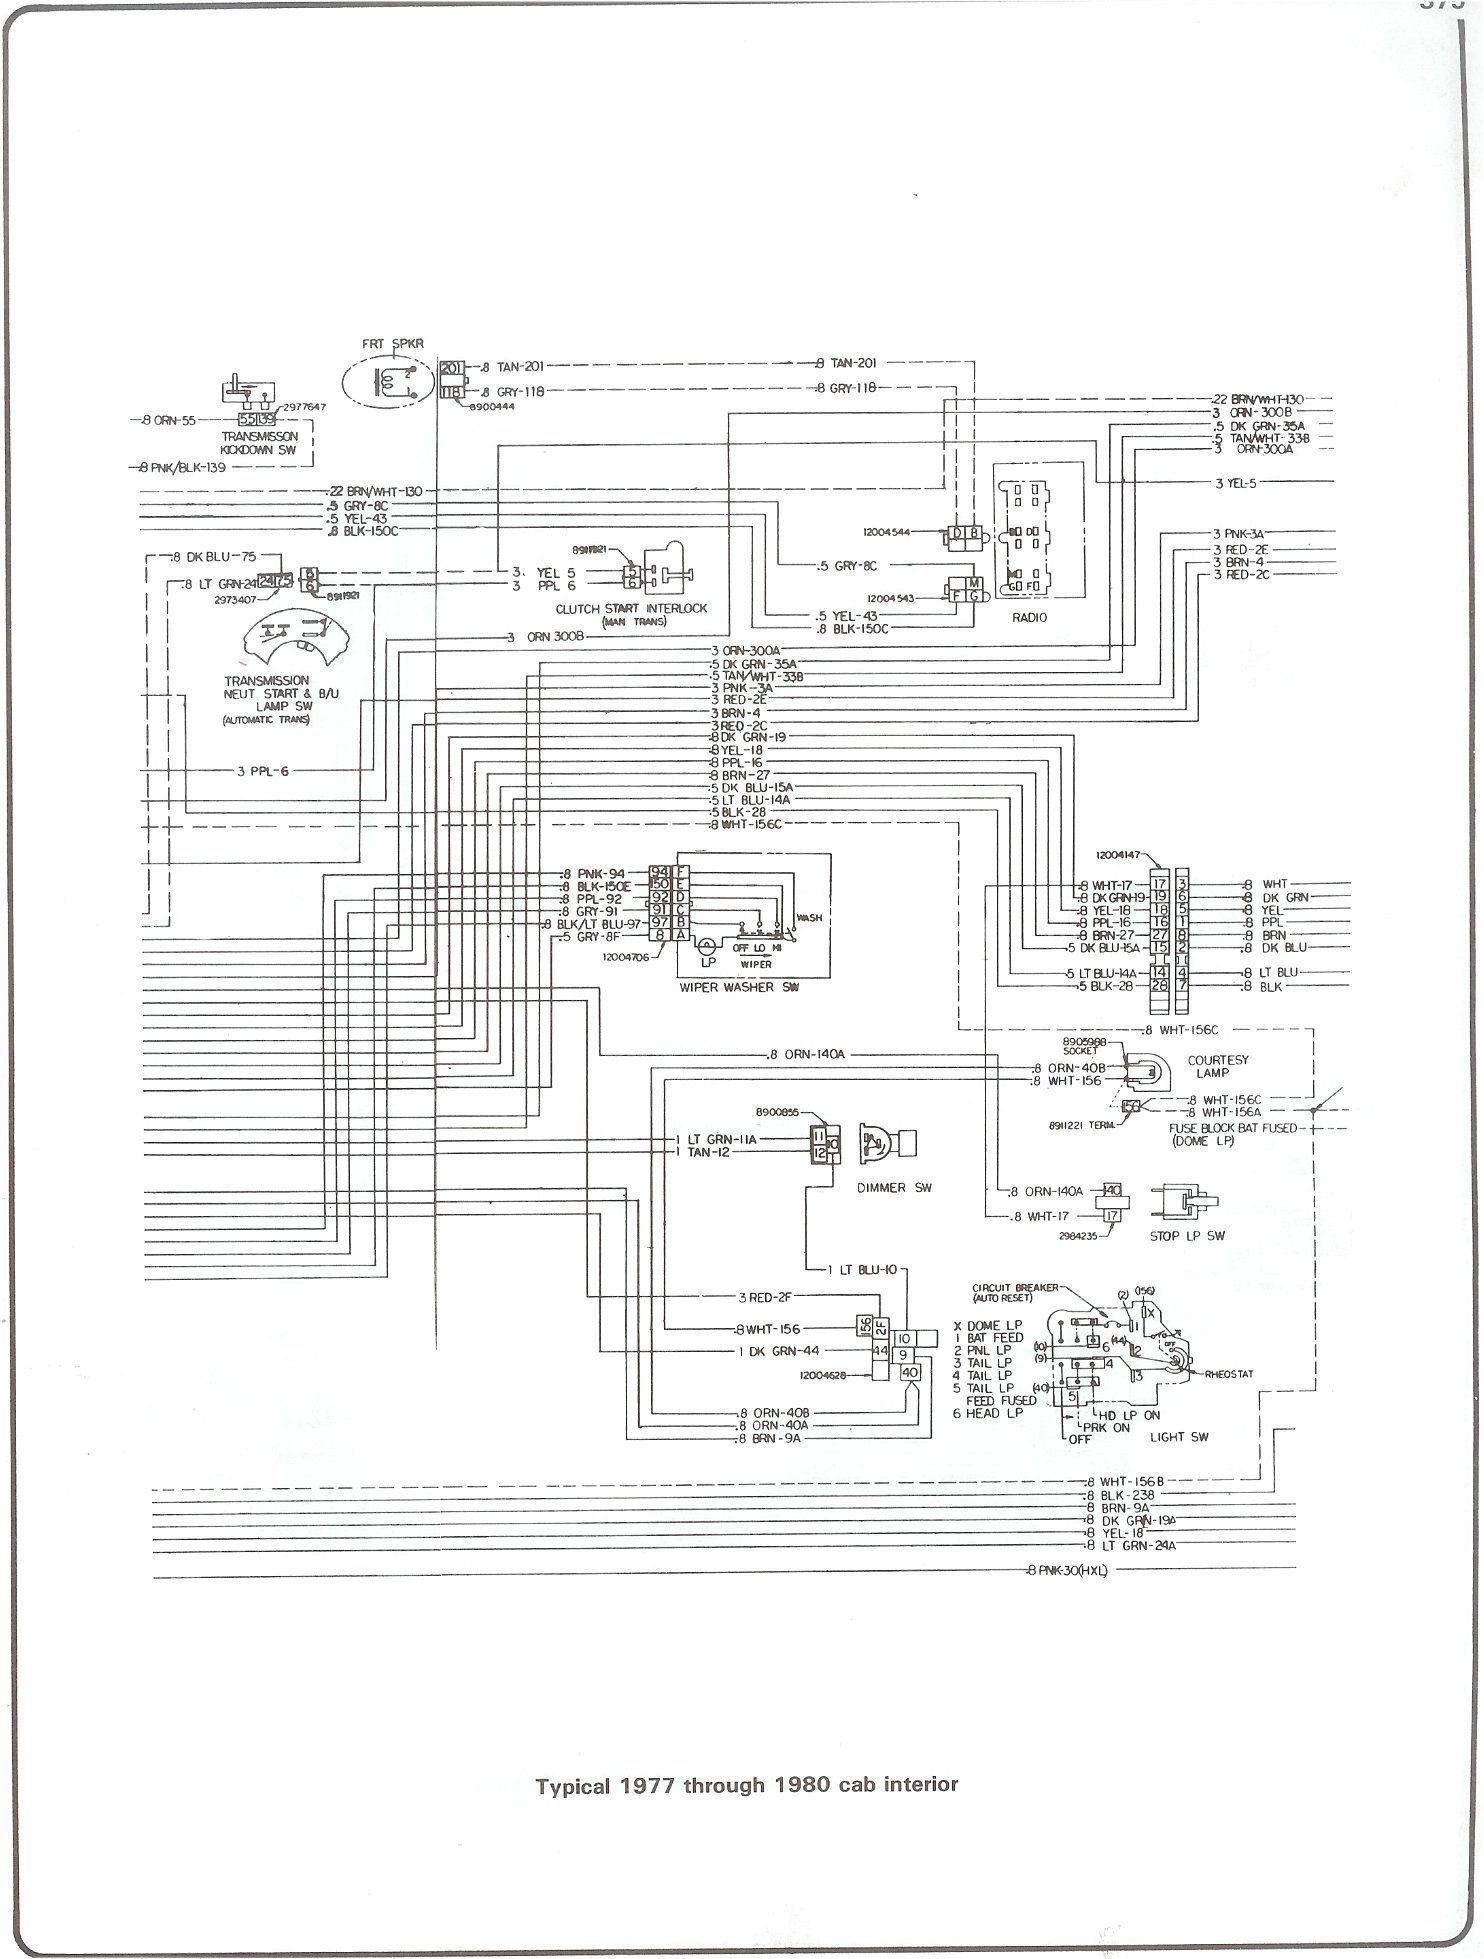 complete 73 87 wiring diagrams rh forum 73 87chevytrucks com 1980 chevrolet  c10 wiring diagram 1979 Chevy C10